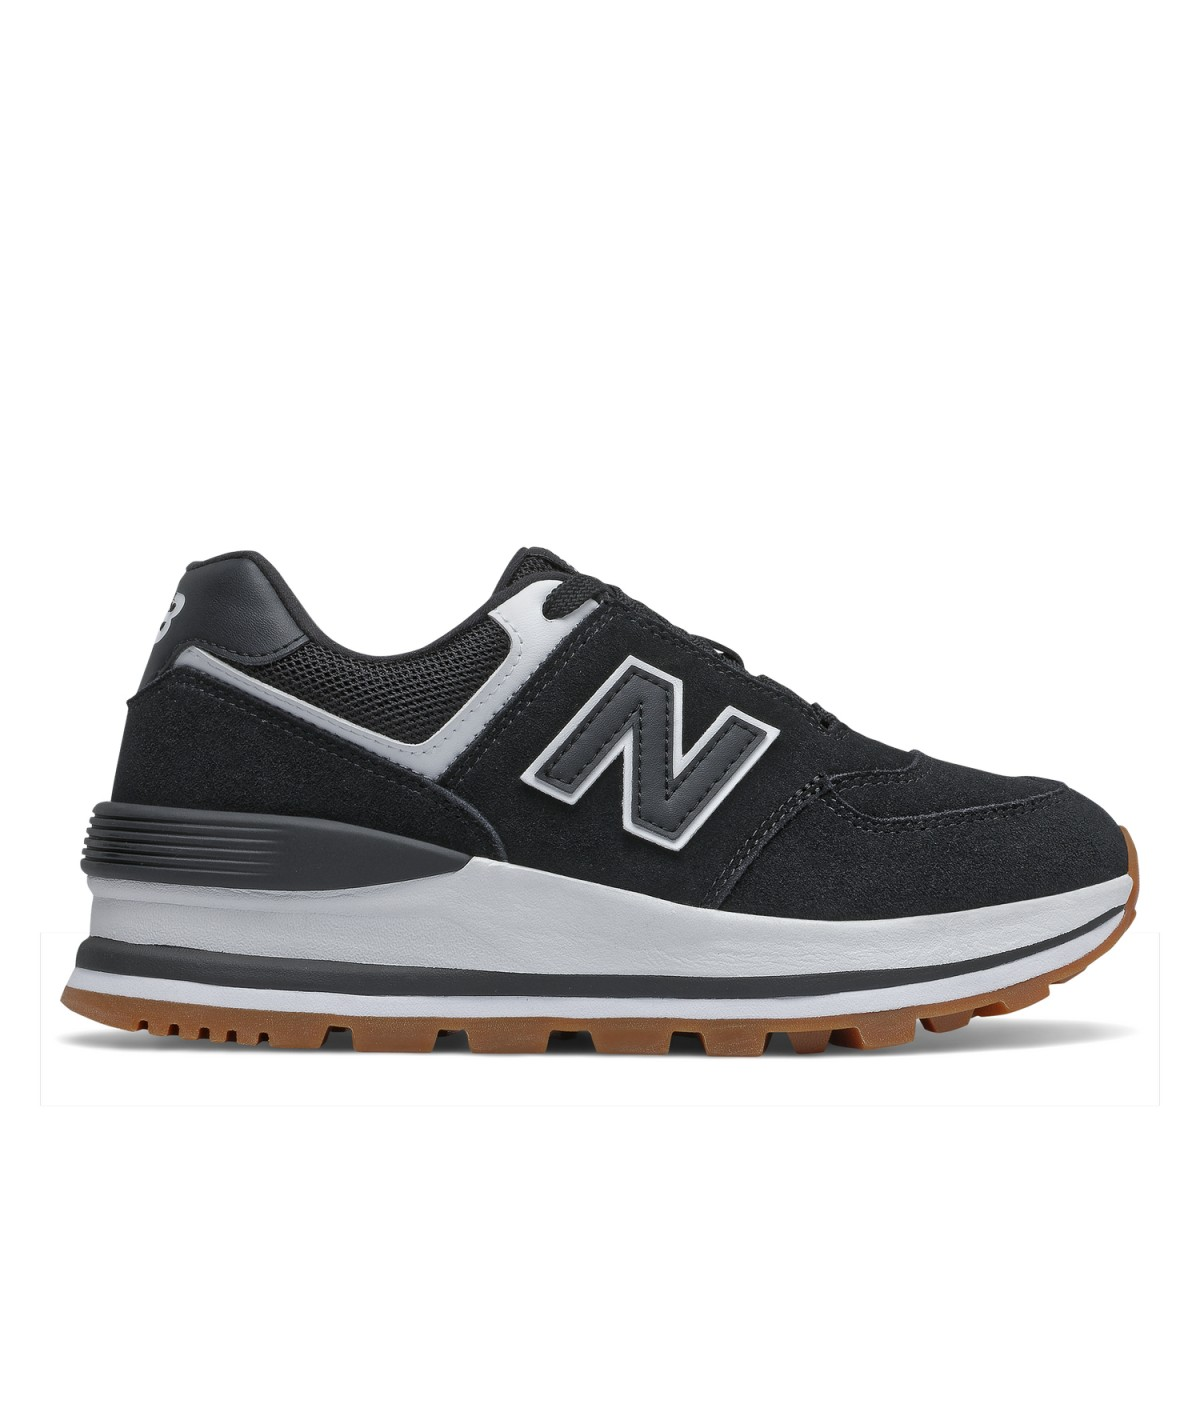 New Balance 574 CAF sneaker...